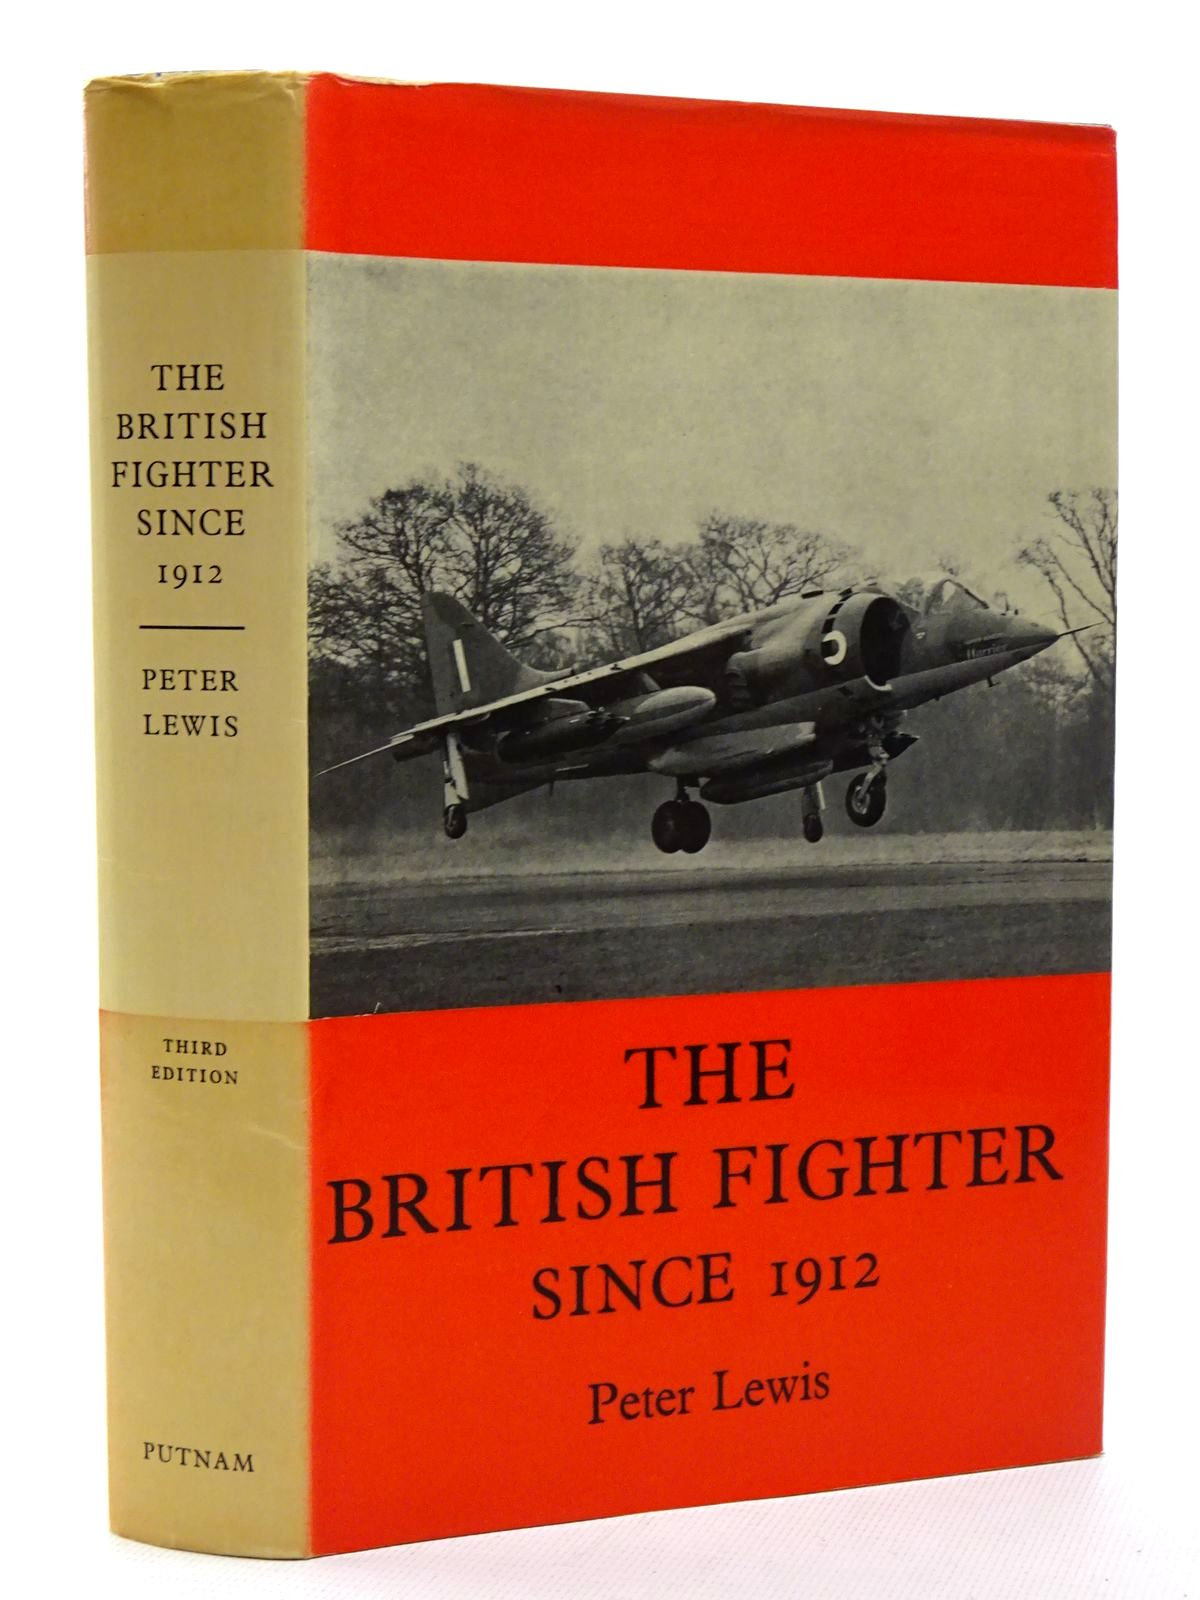 Photo of THE BRITISH FIGHTER SINCE 1912 SIXTY YEARS OF DESIGN AND DEVELOPMENT written by Lewis, Peter published by Putnam & Co. Ltd. (STOCK CODE: 1610387)  for sale by Stella & Rose's Books